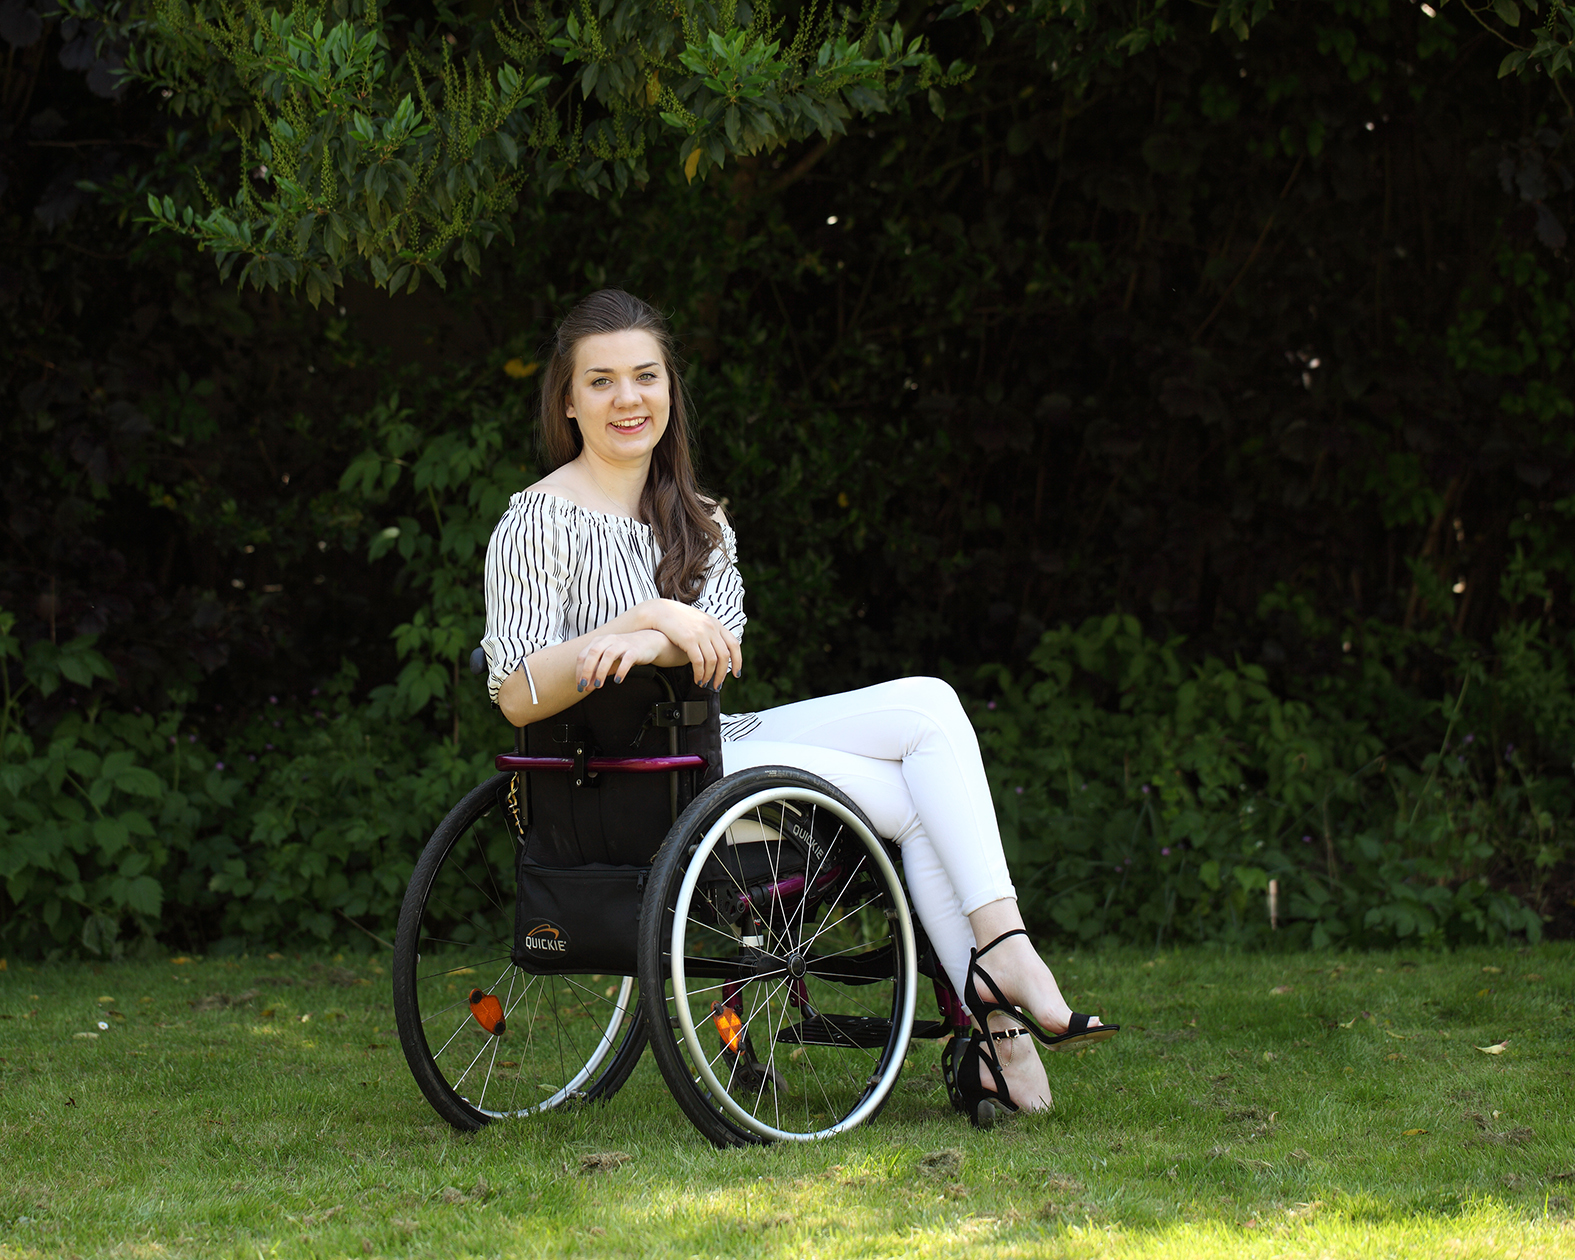 Ruth, Ehlers-Danlos Syndrome, Zebedee Management, disabled, model agency, disability, woman (13)